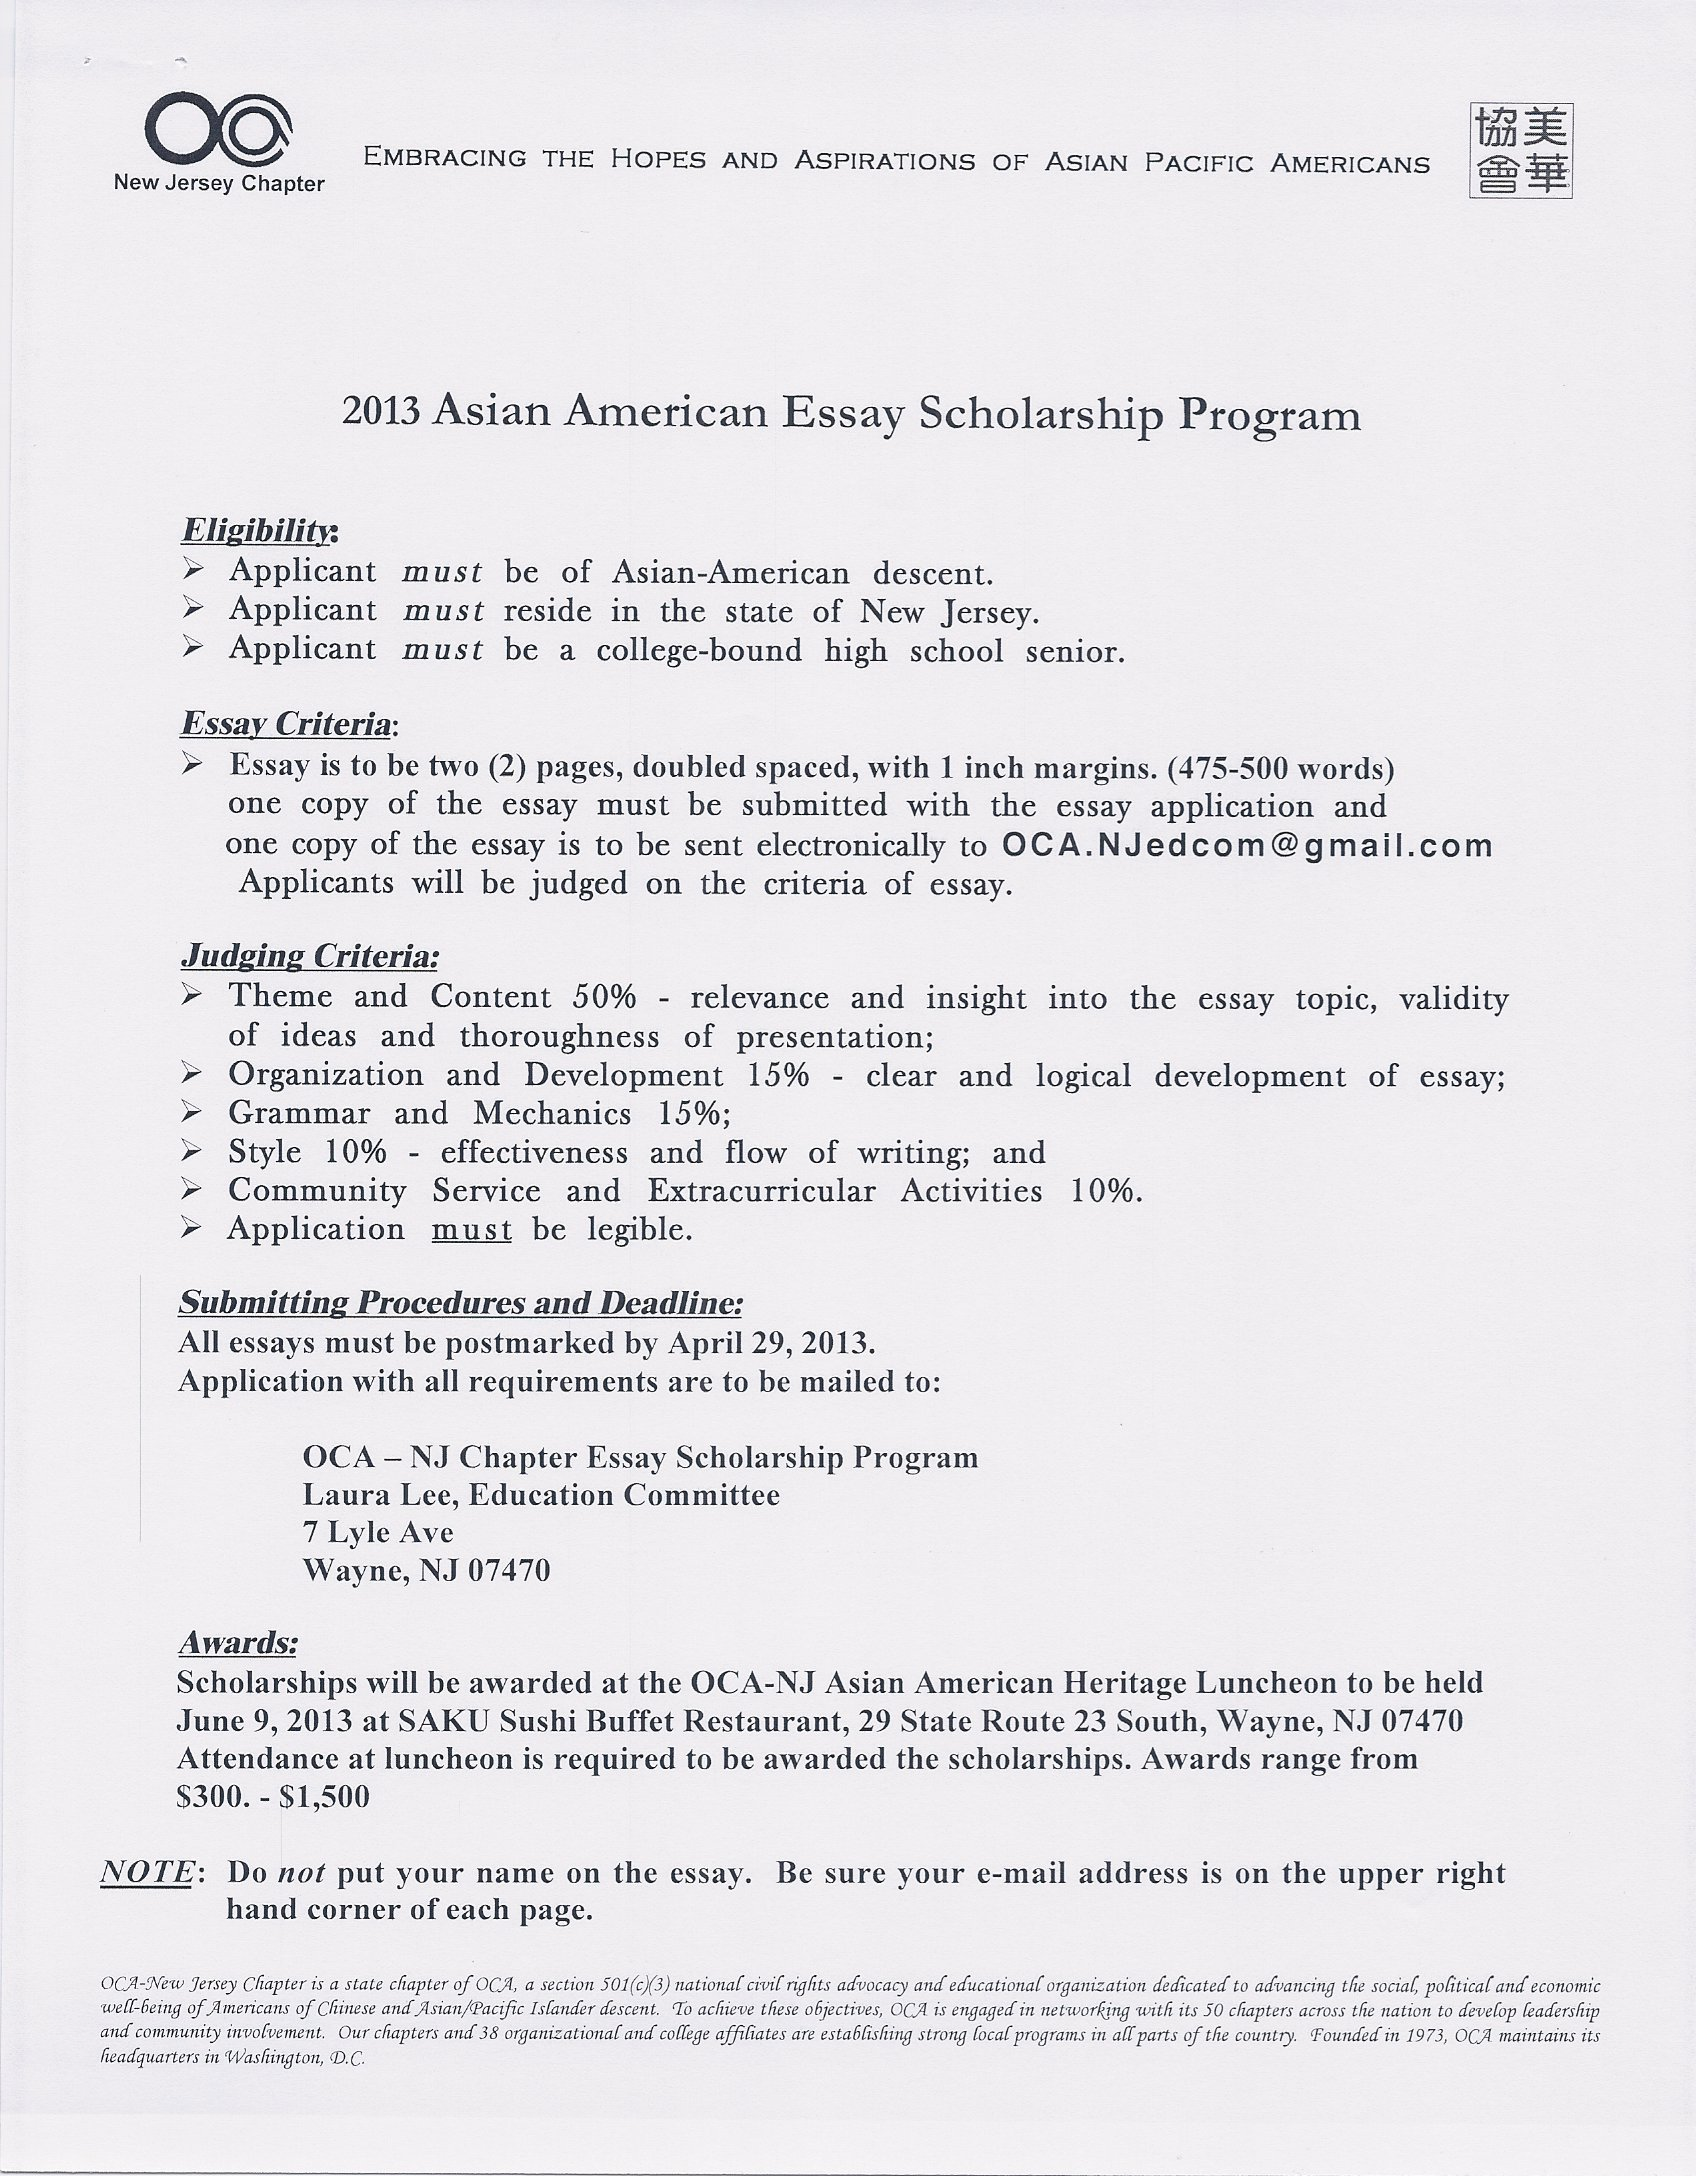 019 Scholarships With Essays Essay Example Singular Without Writing For High School Juniors Class Of 2020 No 2019 Full